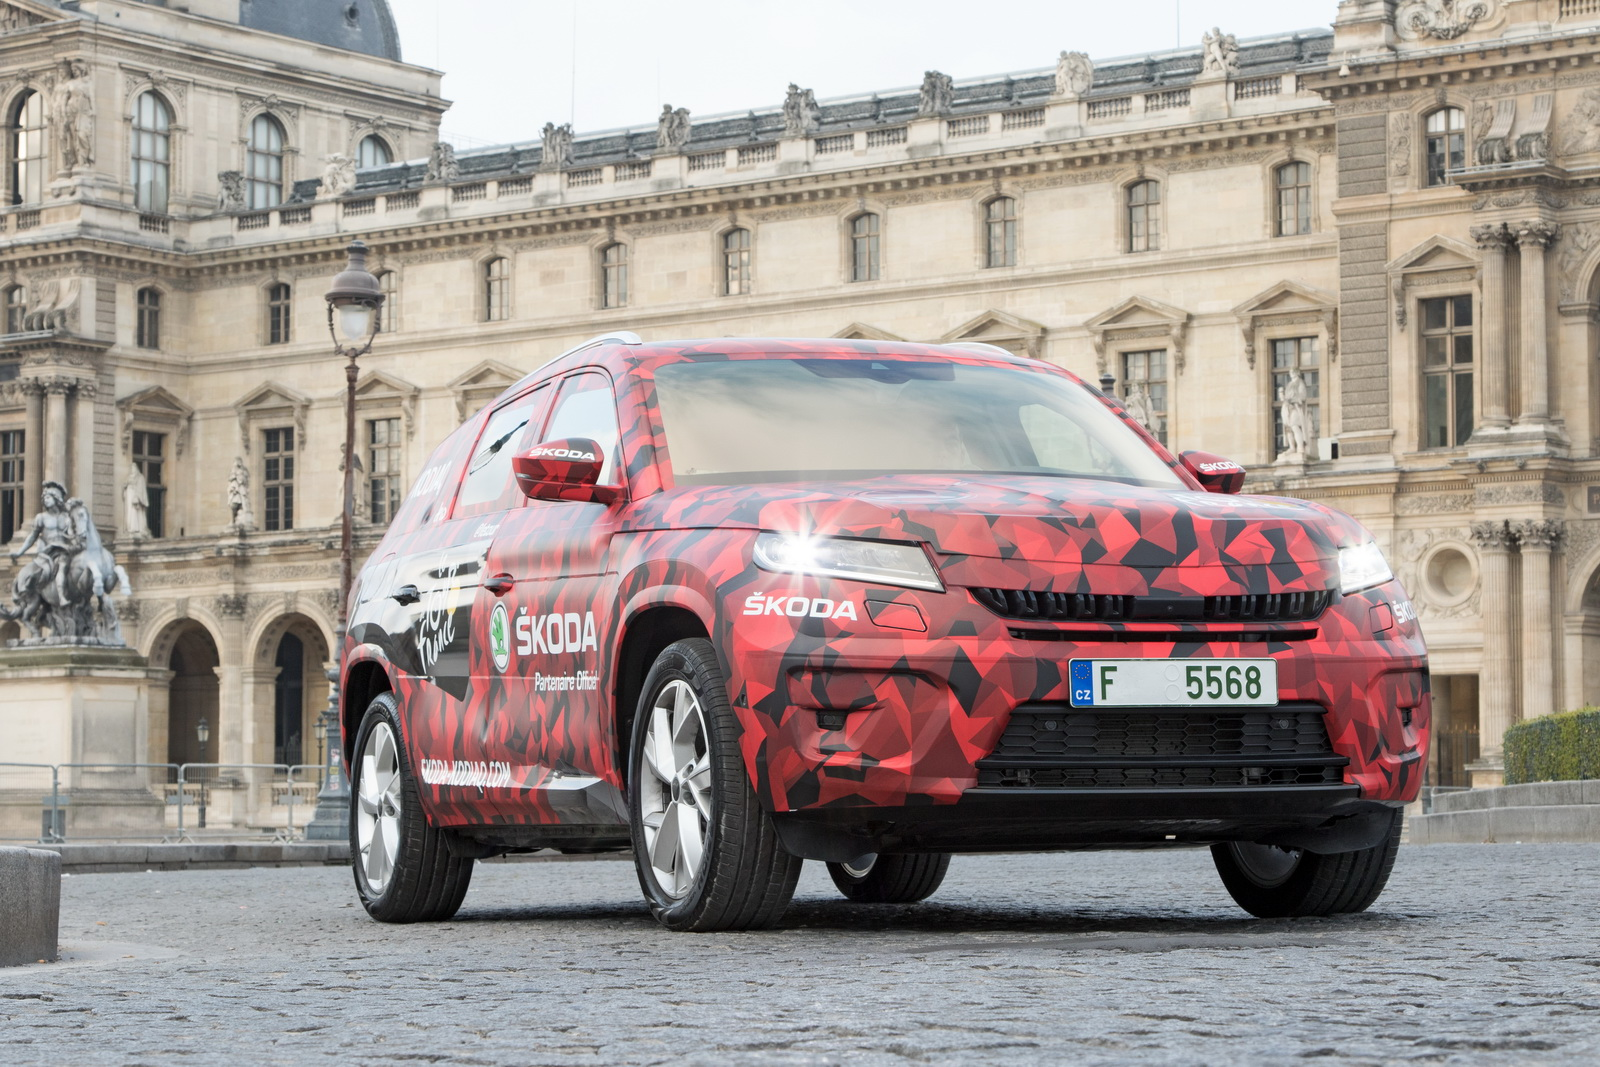 2017-skoda-kodiaq-tour-de-france-paris-15